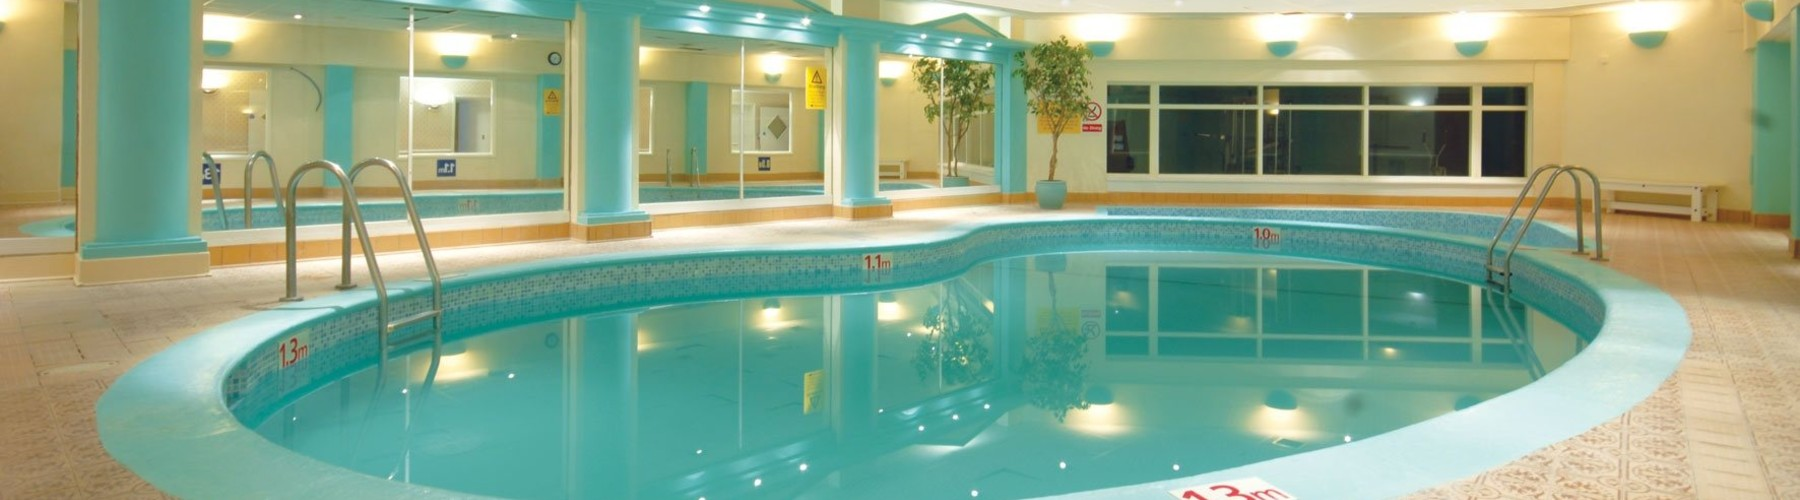 The rivera hotel torquay the riviera hotel - Hotel in torquay with indoor swimming pool ...